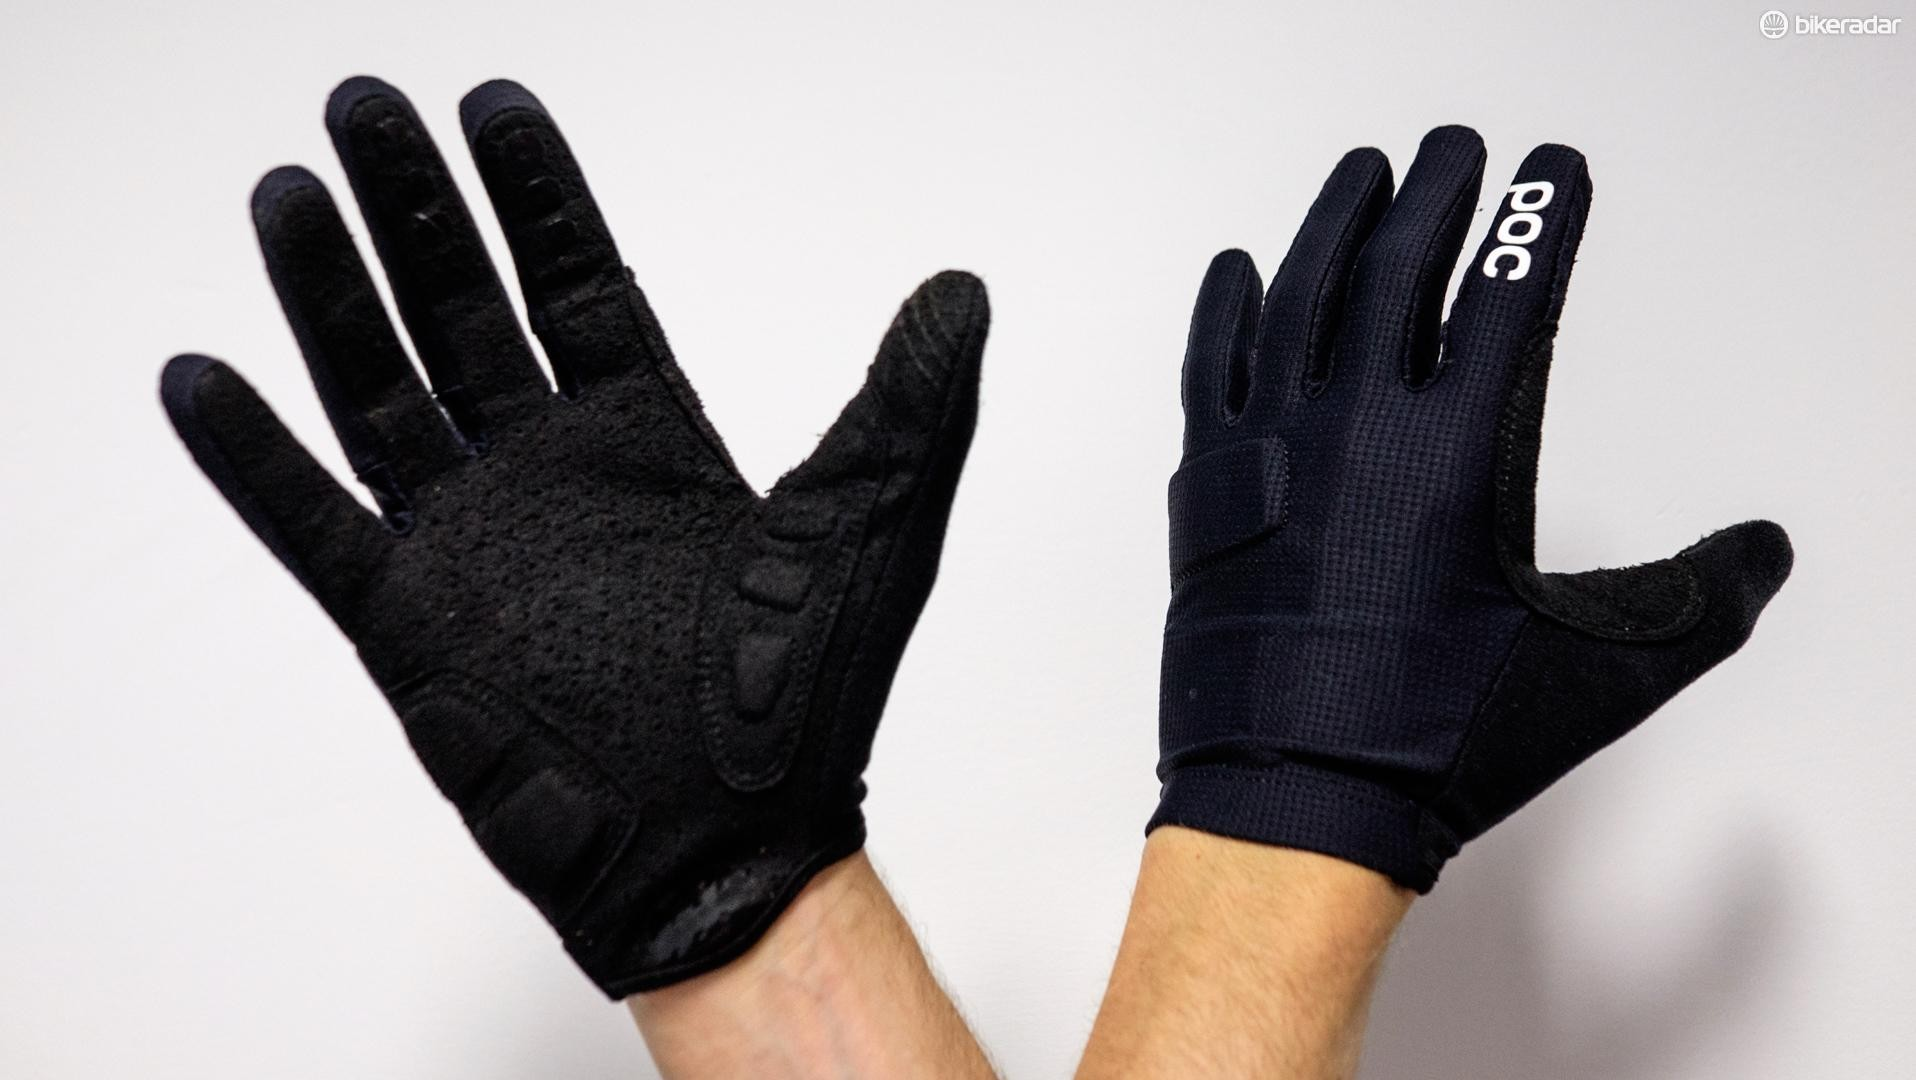 POC Index Flow Gloves are easy to put on, with knuckle protection for any unfortunate offs